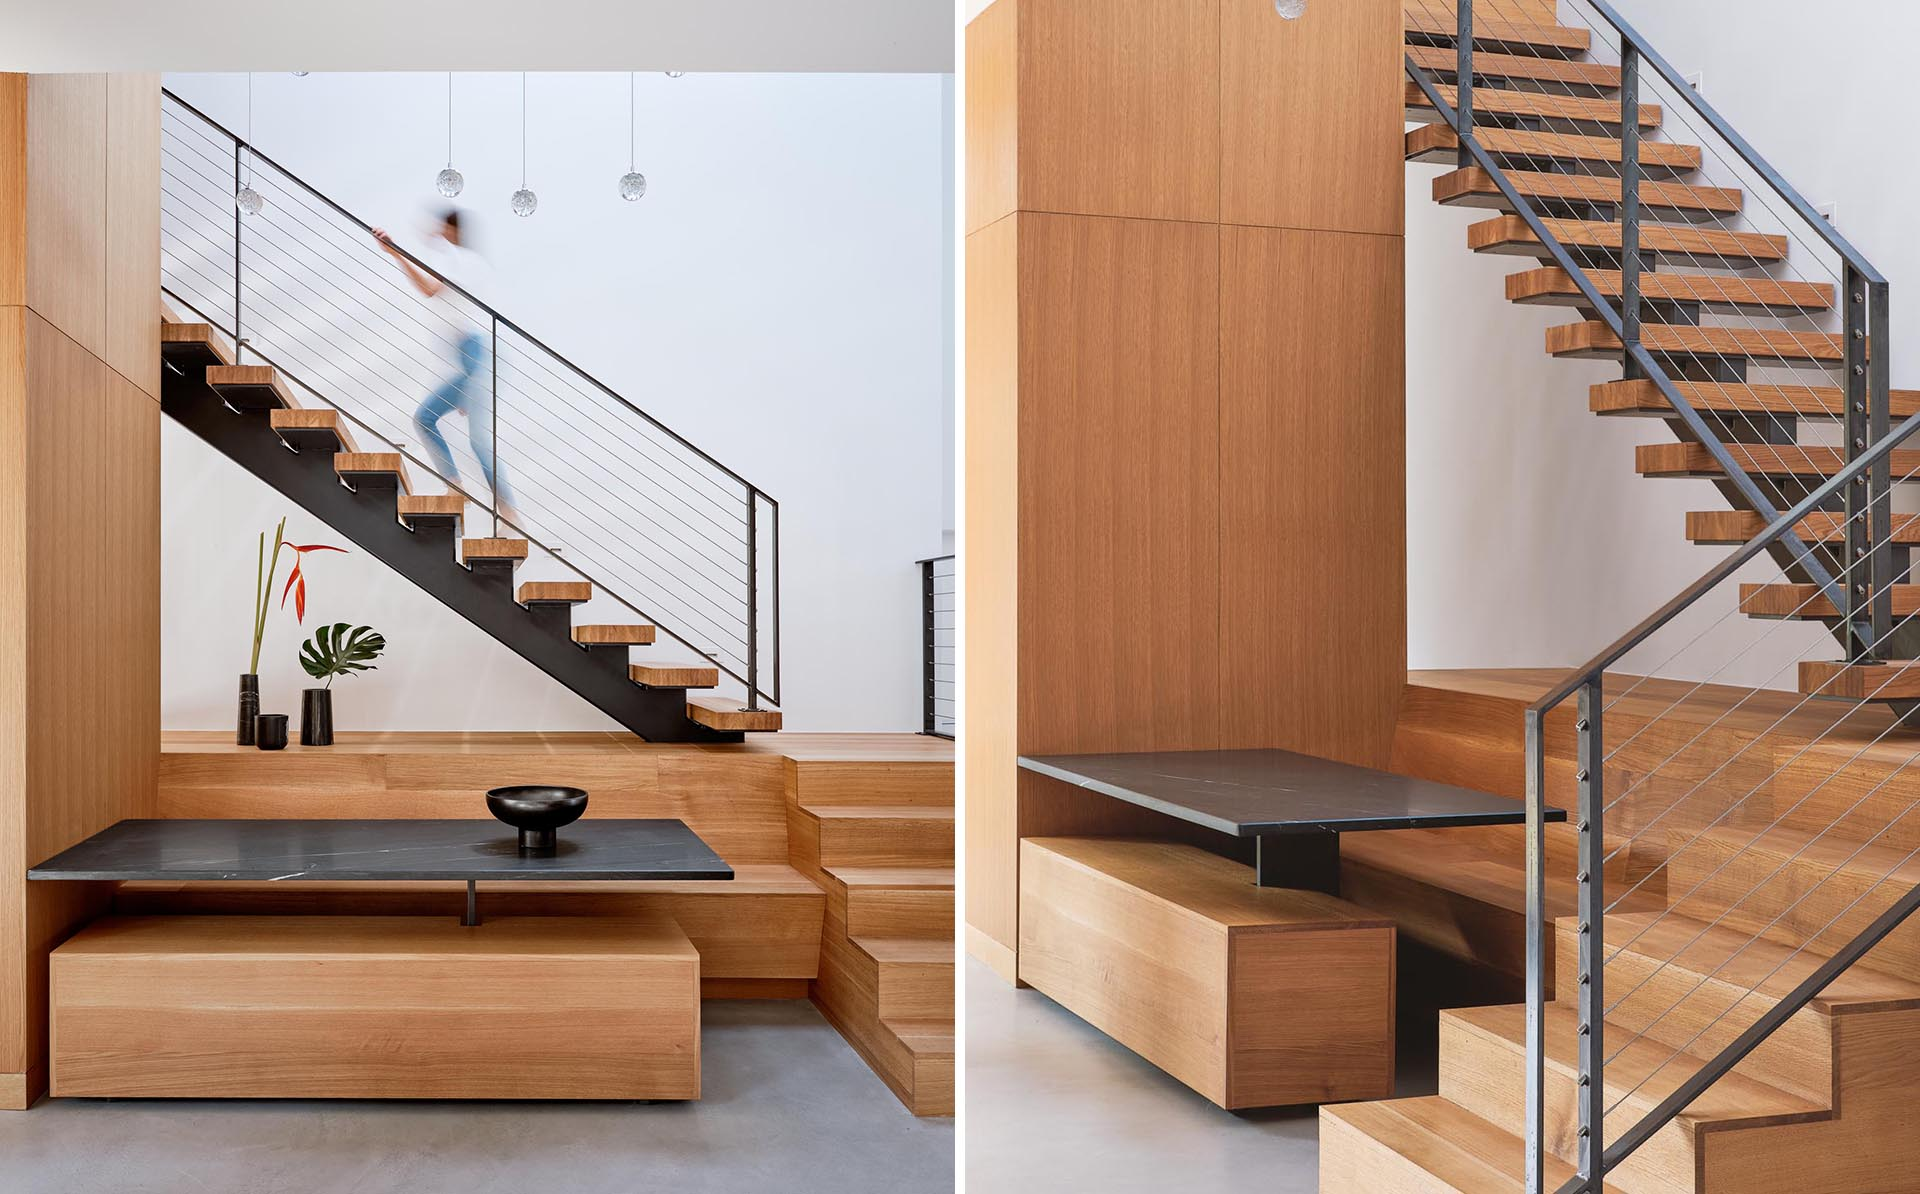 A modern house addition that includes a dining area built into the space underneath the stairs.